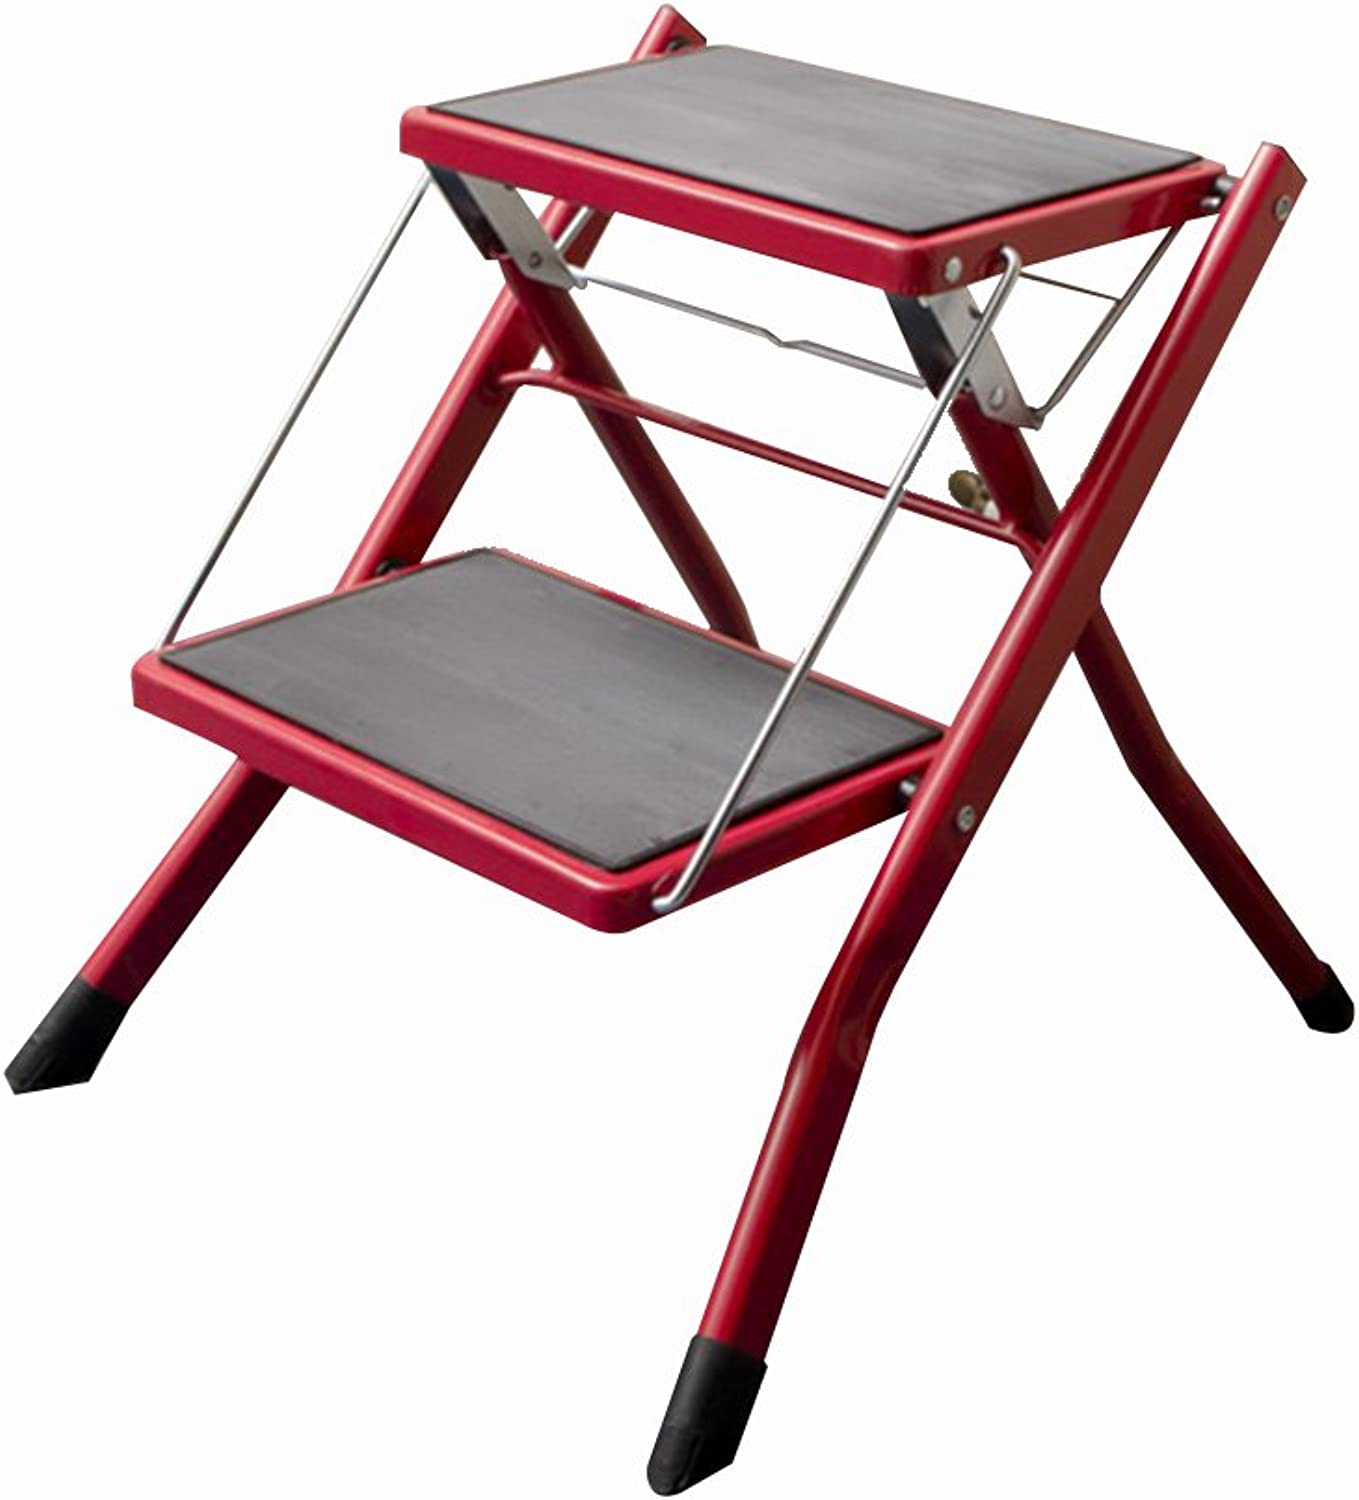 GAIXIA-Ladder stool Folding Step Stool Heavy Steel Step Stool 2-Step Multi-Function Portable with Anti-Slip Mat Assembly Simple Ladder, 5 colors Optional (color   A)